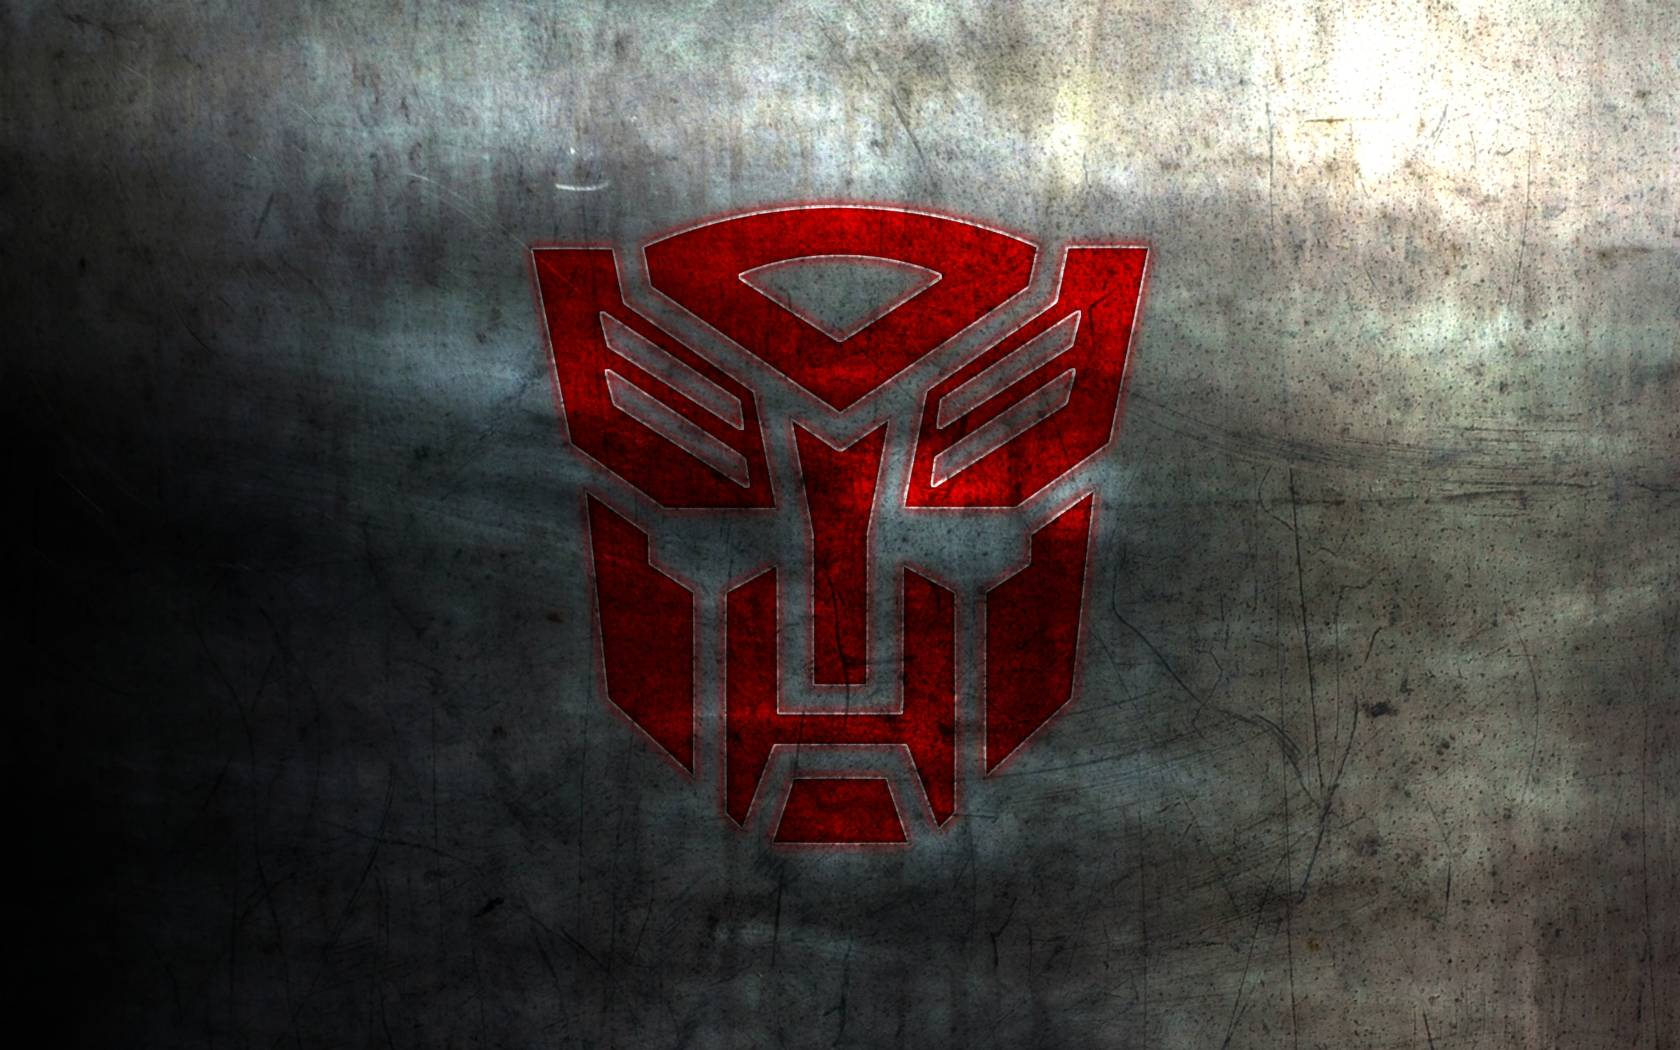 autobot logo on metal red   Transformers Wallpaper 1680x1050